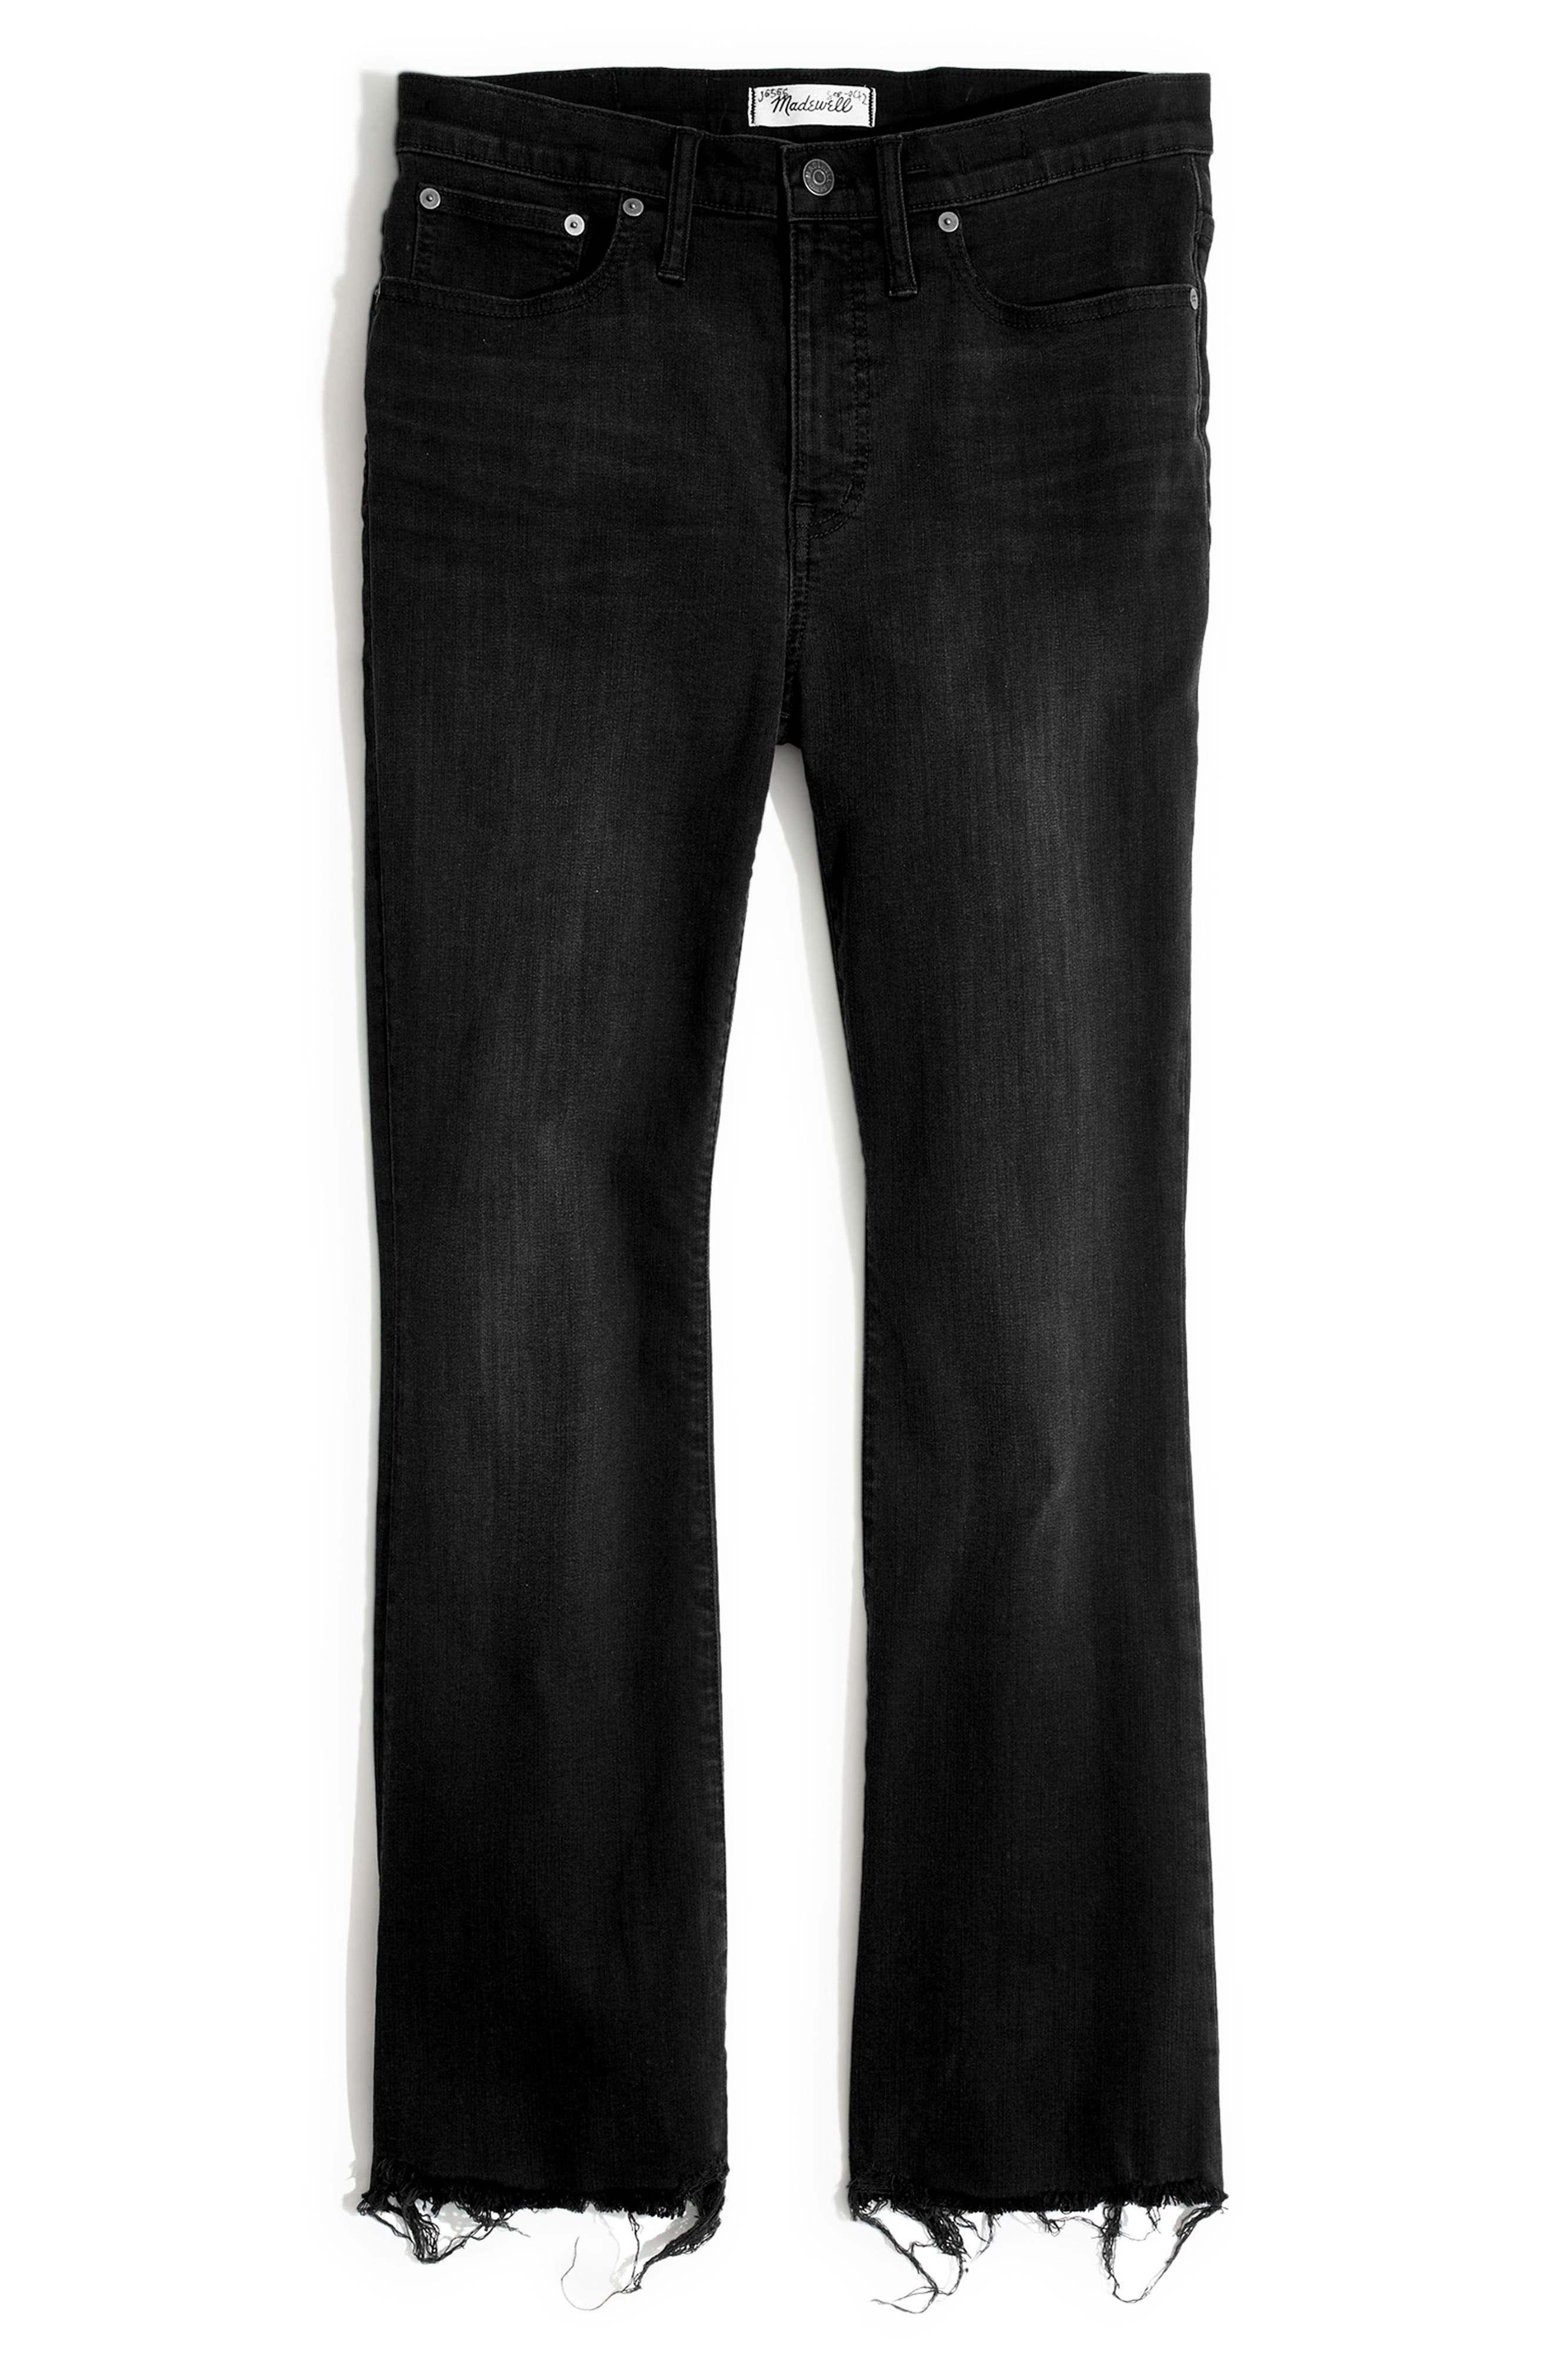 MADEWELL, Cali Chewed Hem Demi Bootcut Jeans, Alternate thumbnail 6, color, BERKELEY